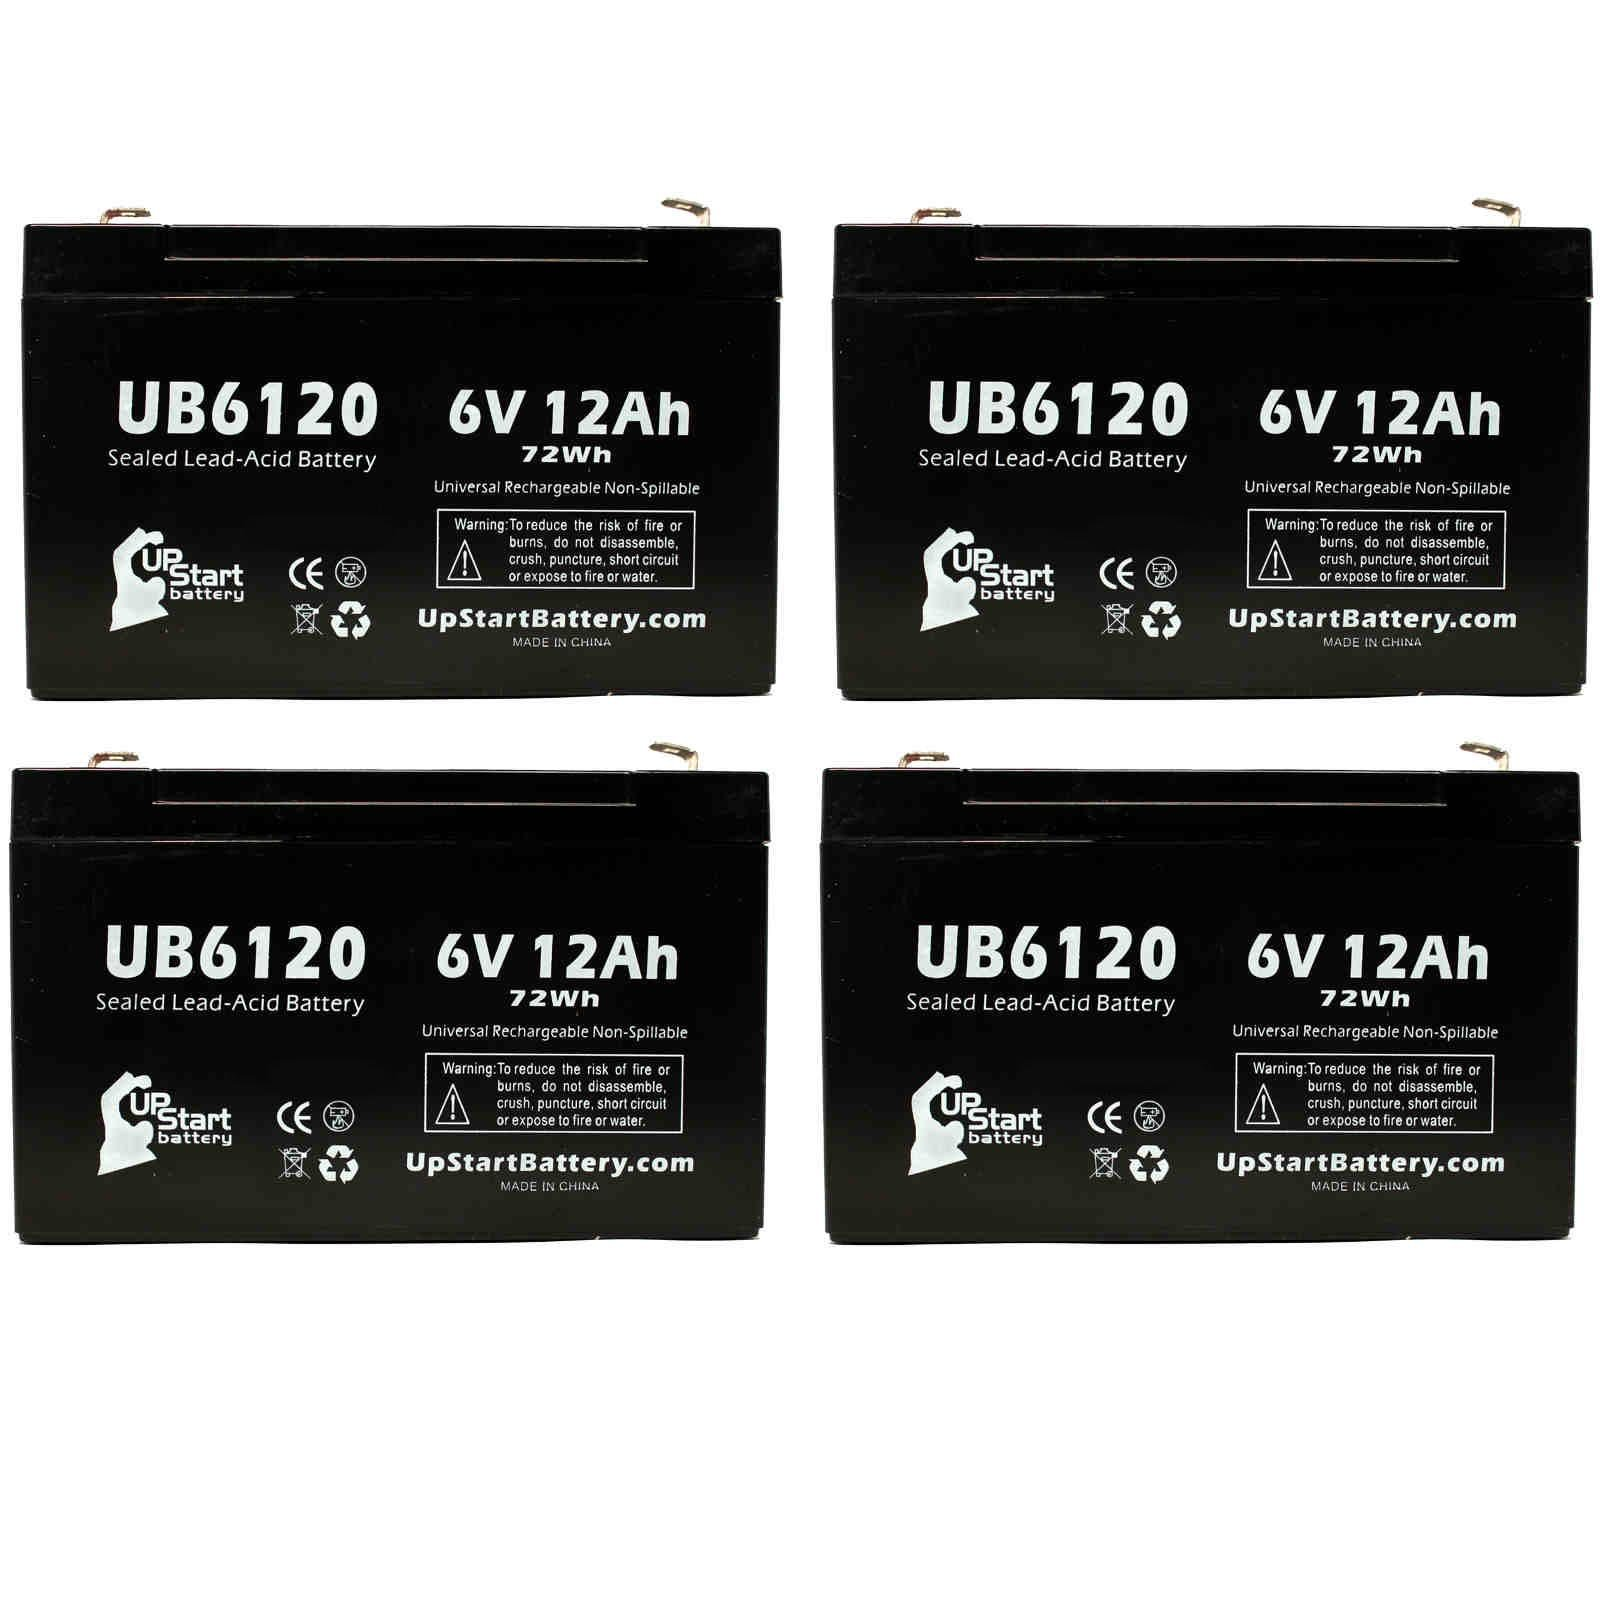 4 Pack Replacement for Sentry LITE PM6100 Battery - Replacement UB6120 Universal Sealed Lead Acid Battery (6V, 12Ah, 12000mAh, F1 Terminal, AGM, SLA) - Includes 8 F1 to F2 Terminal Adapters